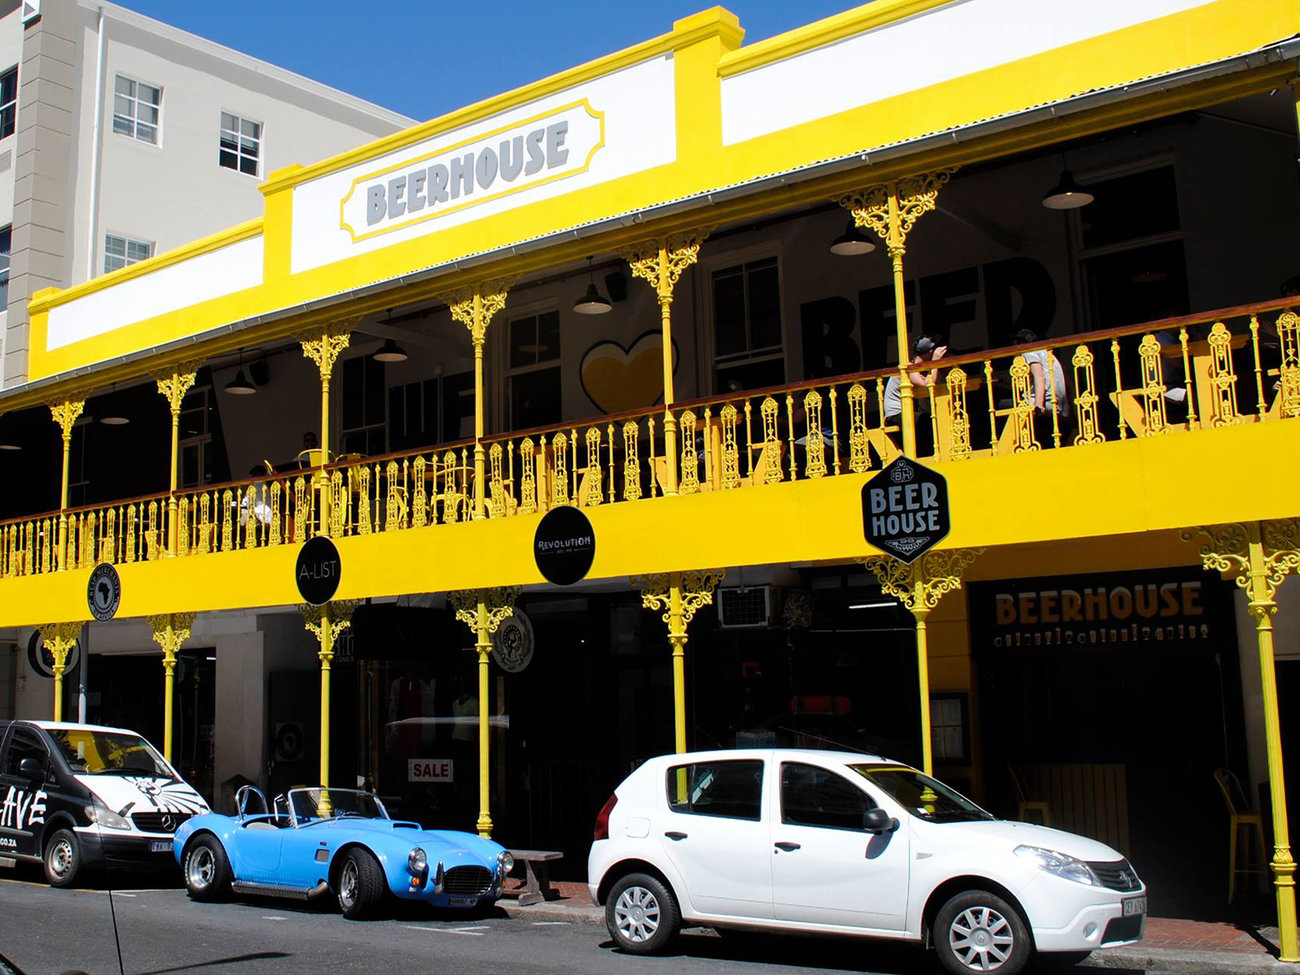 Beerhouse on Long Bar in Cape Town